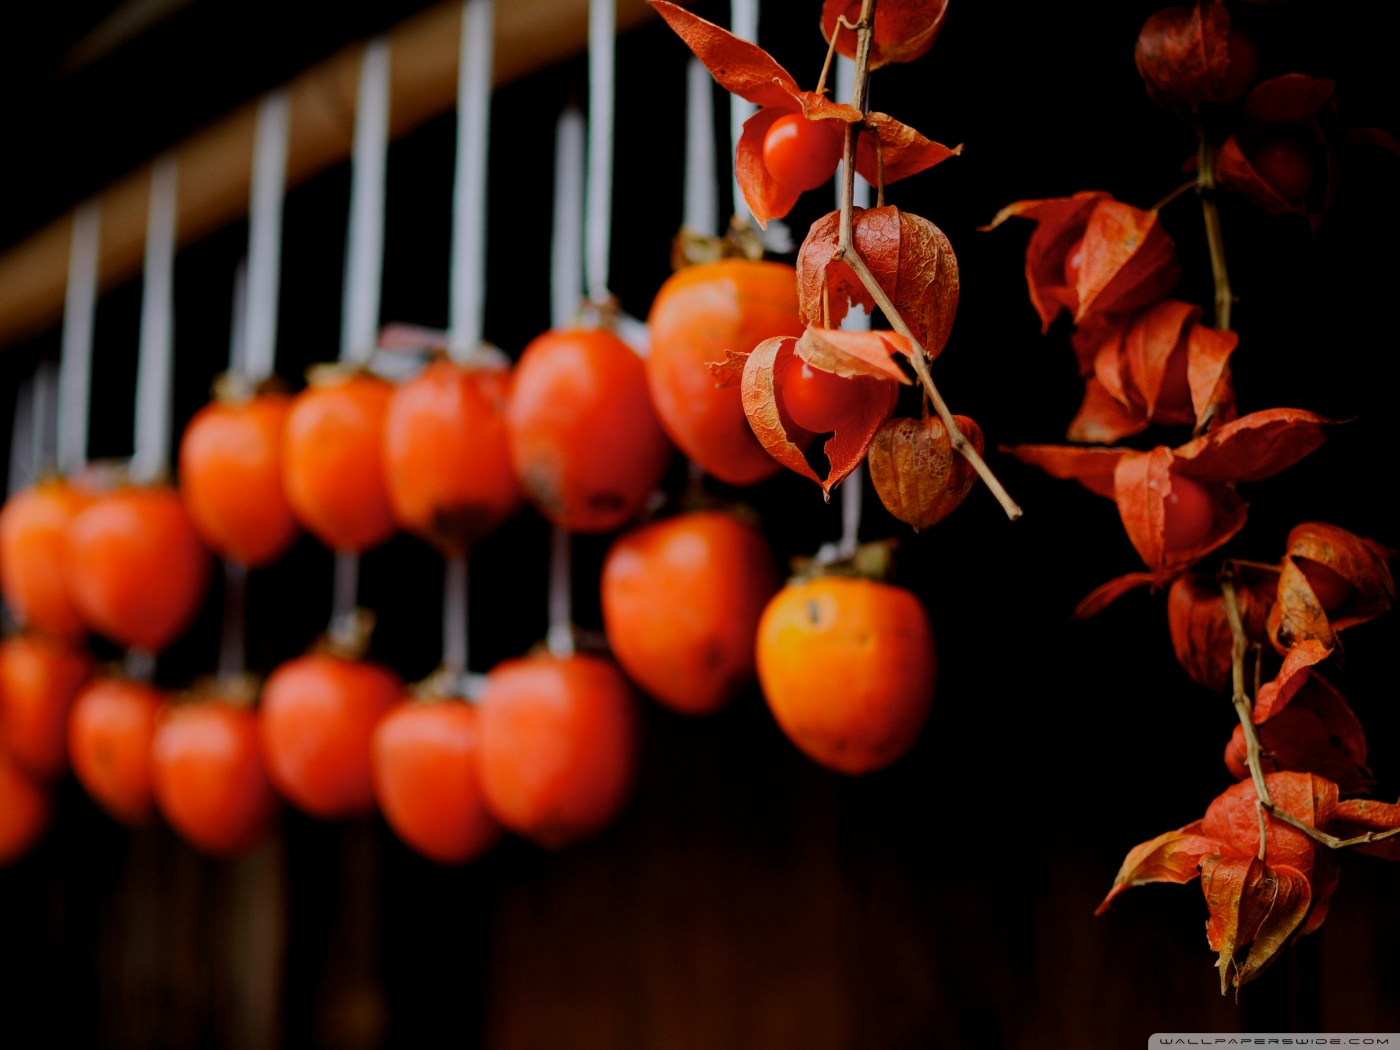 drying_persimmons_tsumago-wallpaper-1400x1050